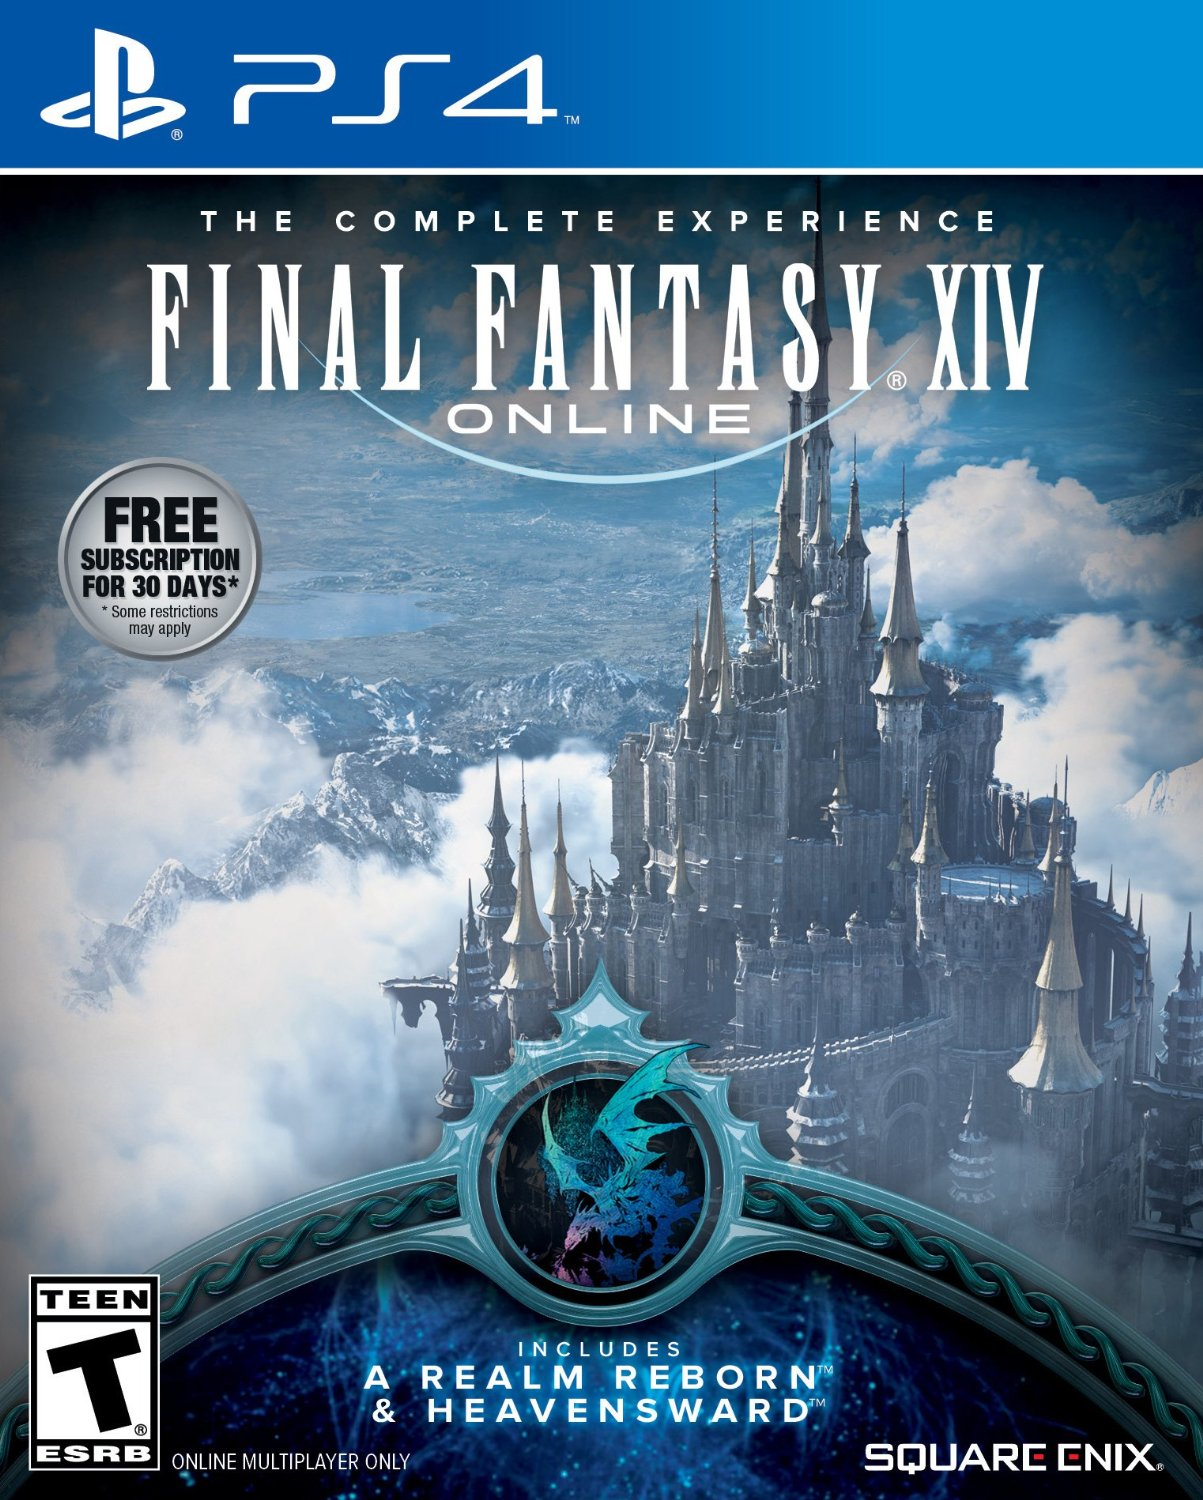 Final Fantasy XIV Online, The Complete Experience